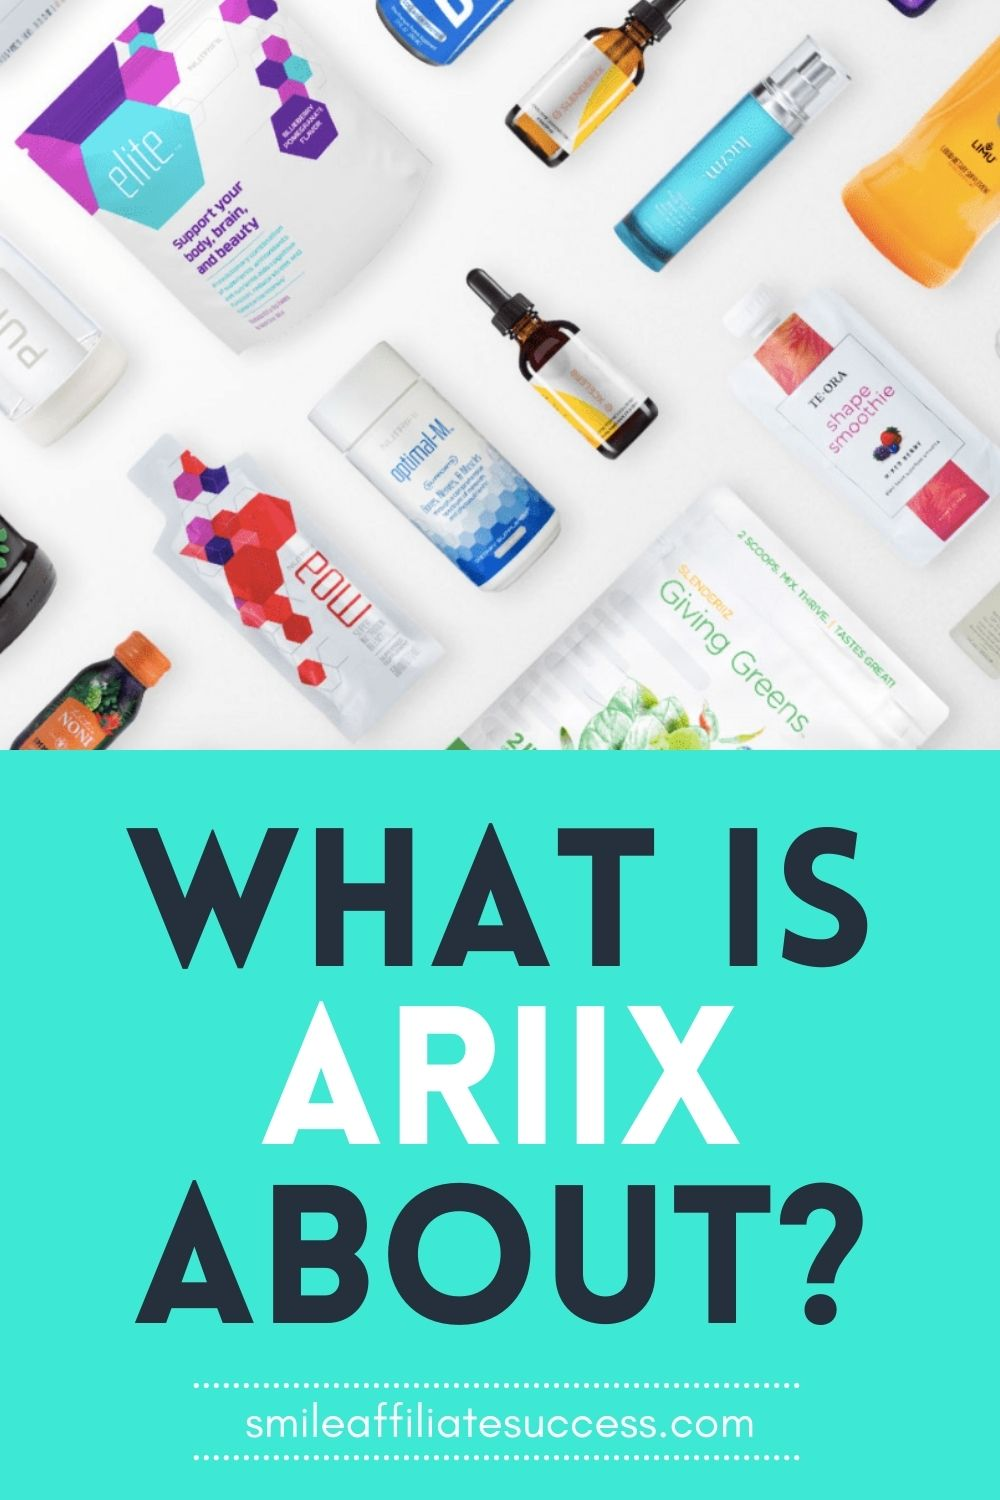 What Is Ariix About?